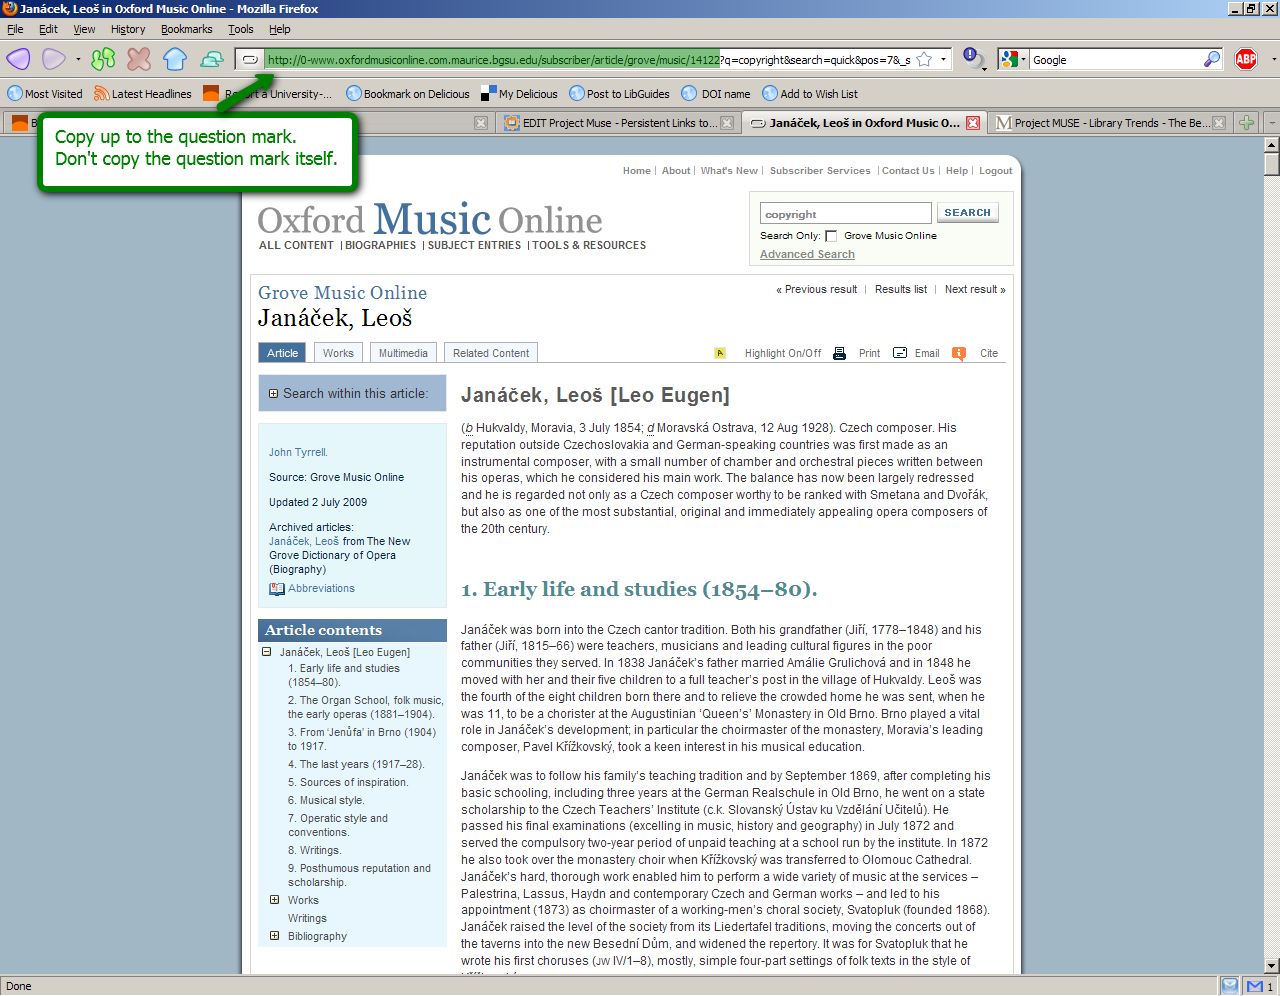 Oxford Music Online search screenshot showing how to get the persistent link: Copy (the address bar) up to the question mark, don't copy the question mark itself.